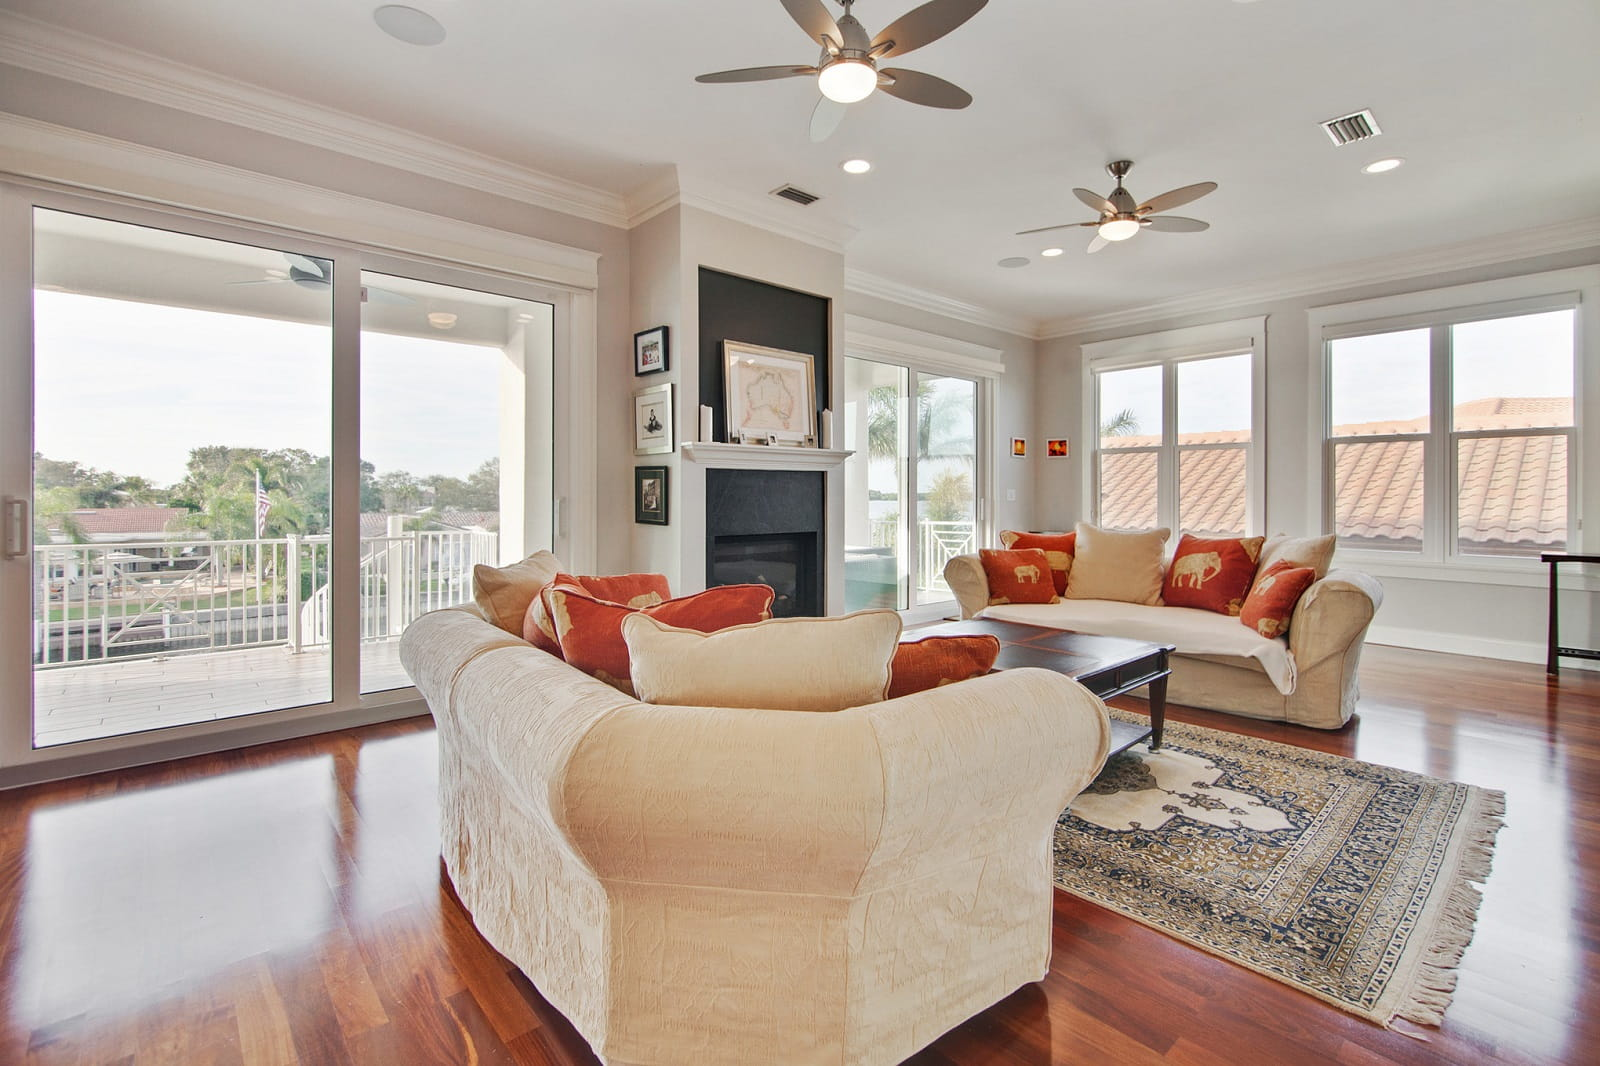 Real Estate Photography in St. Petersburg - FL - USA - Living Area View